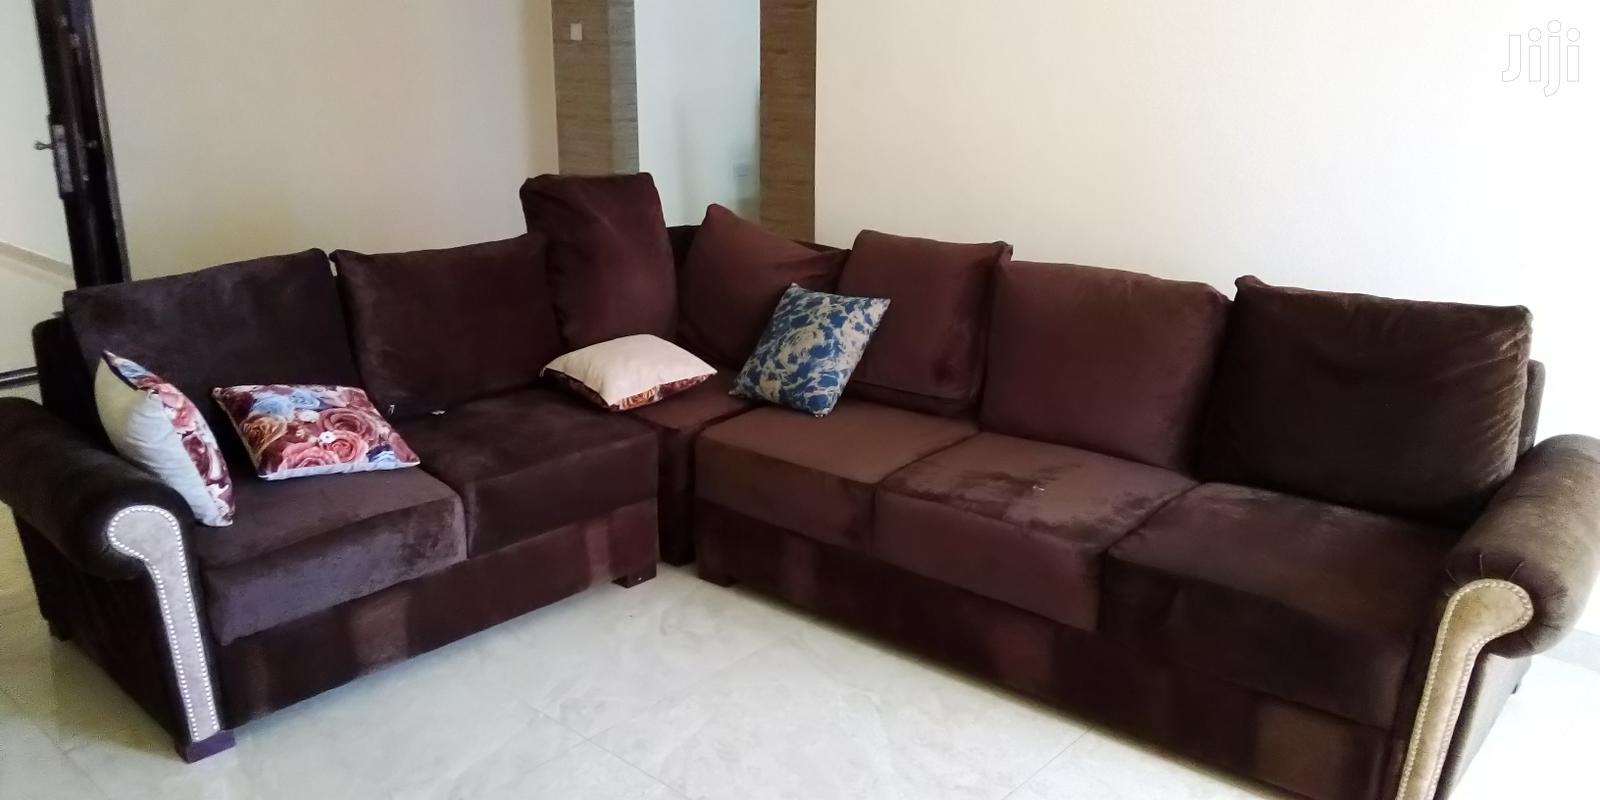 3 Bedrooms Fully Furnished For Rent At Upanga | Houses & Apartments For Rent for sale in Ilala, Dar es Salaam, Tanzania